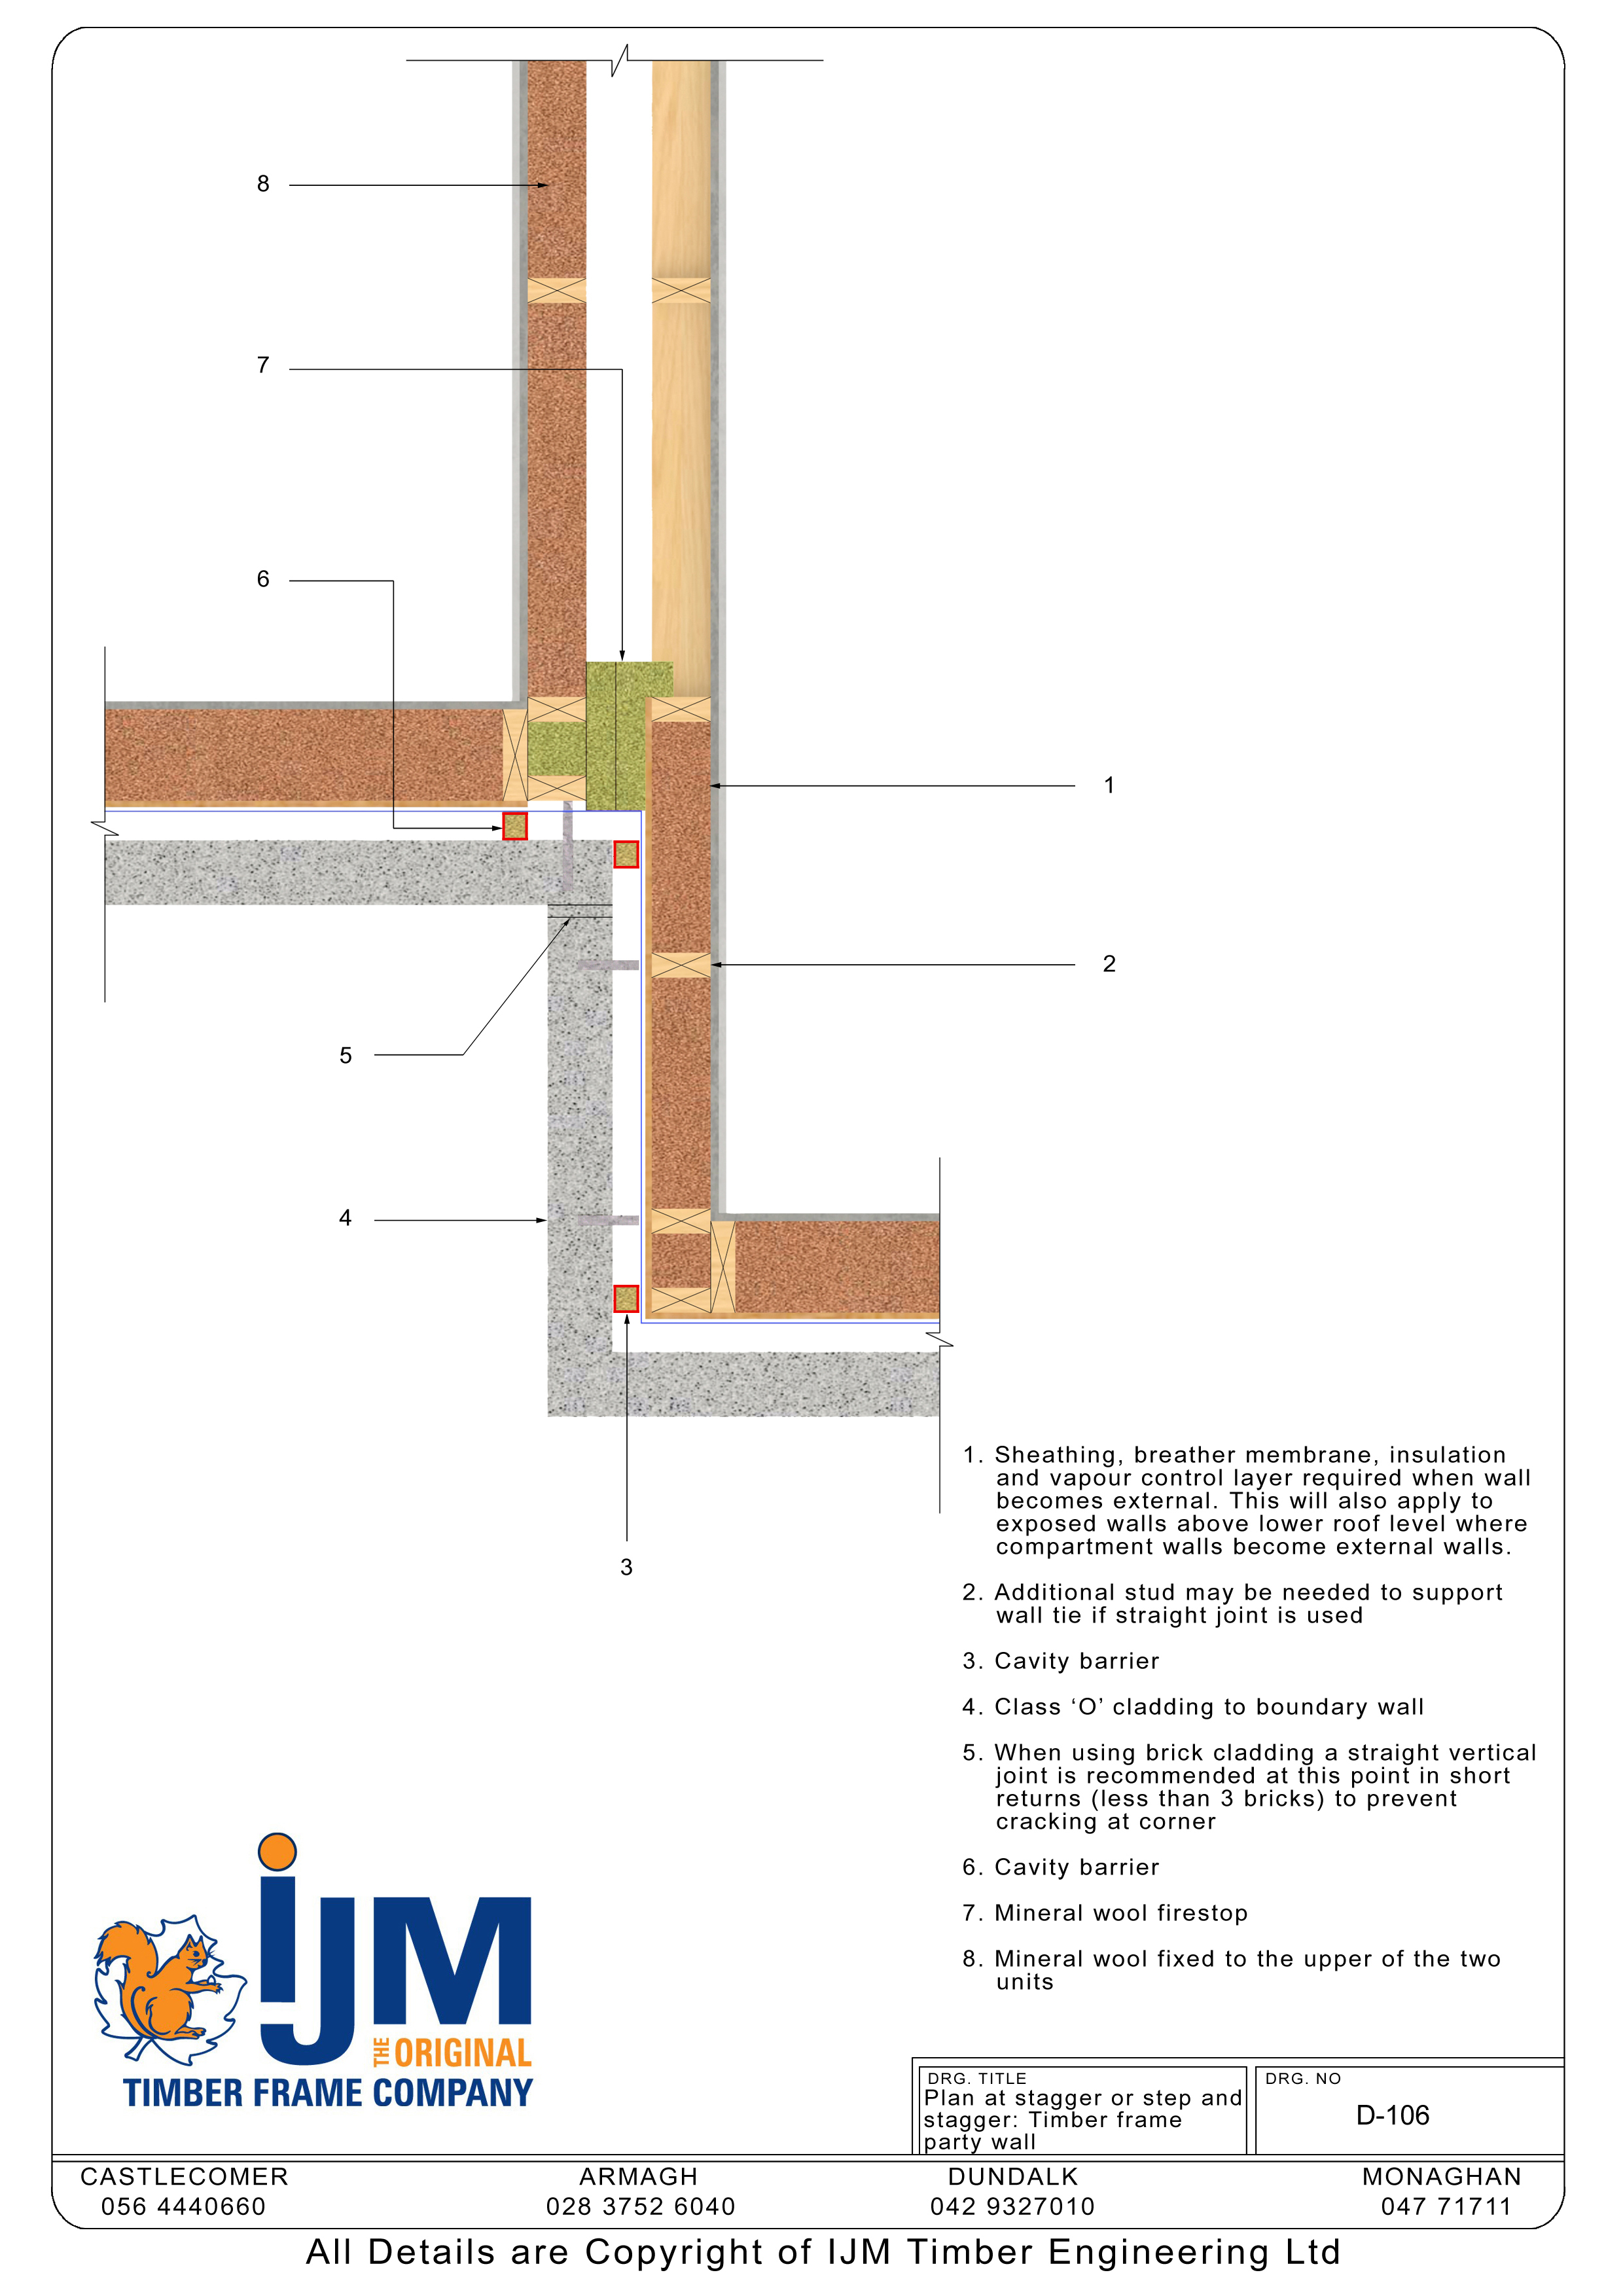 IJM Timberframe - Technical Details - Book of Details - Chapter 3